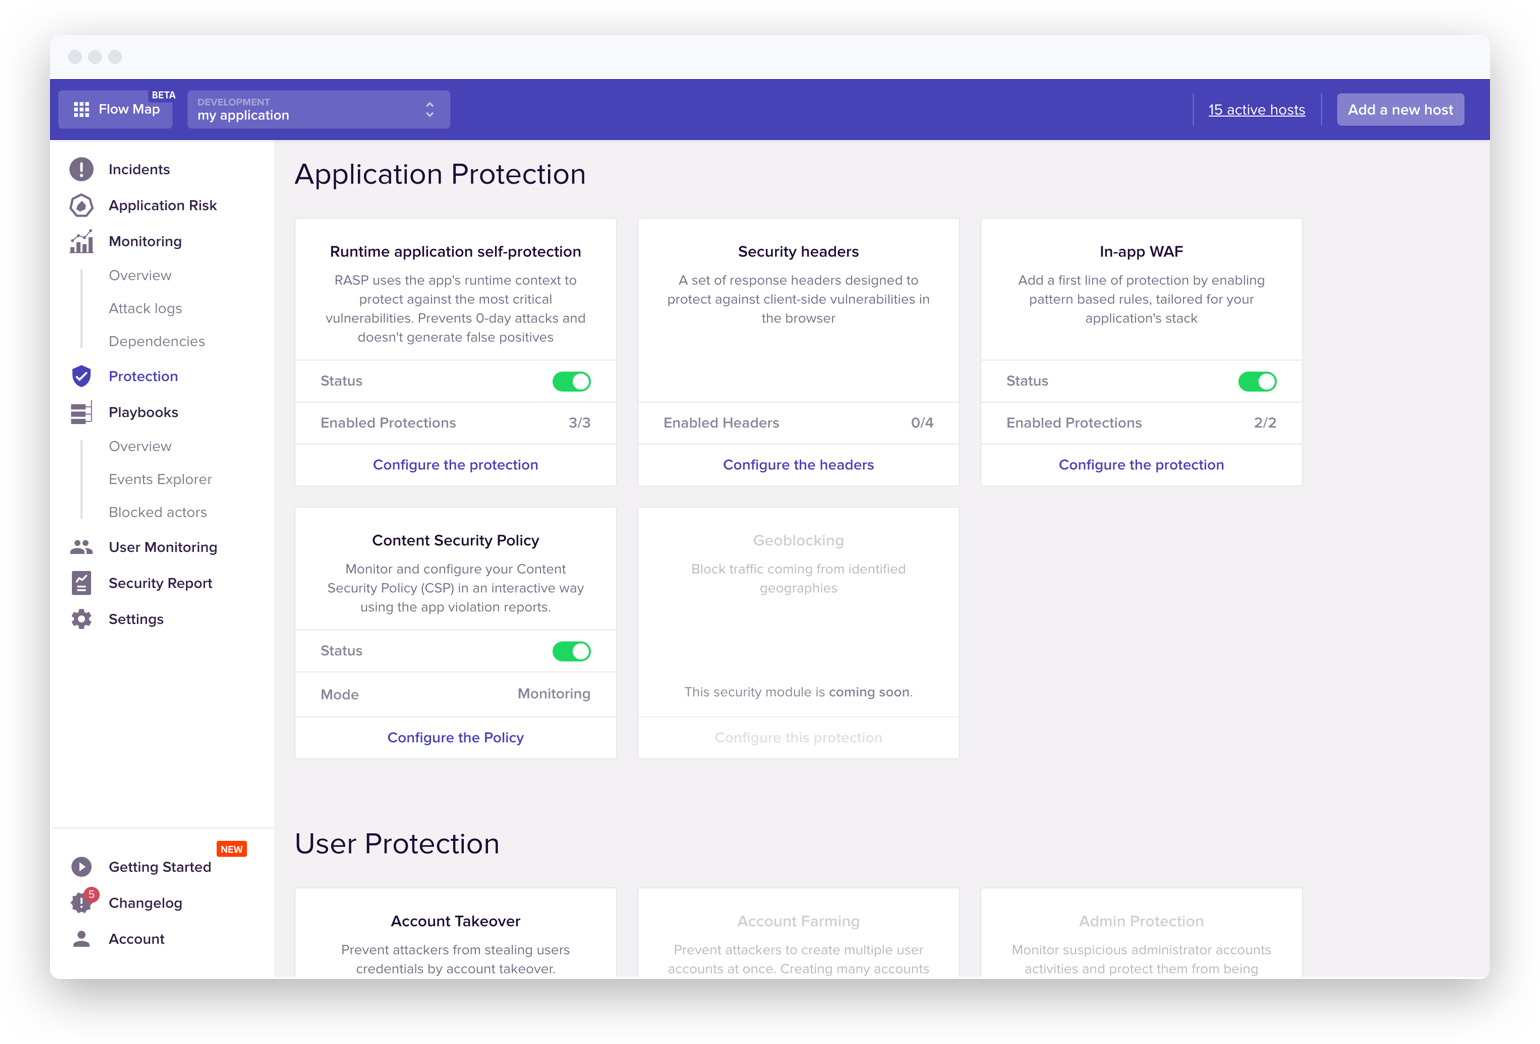 Protection modules